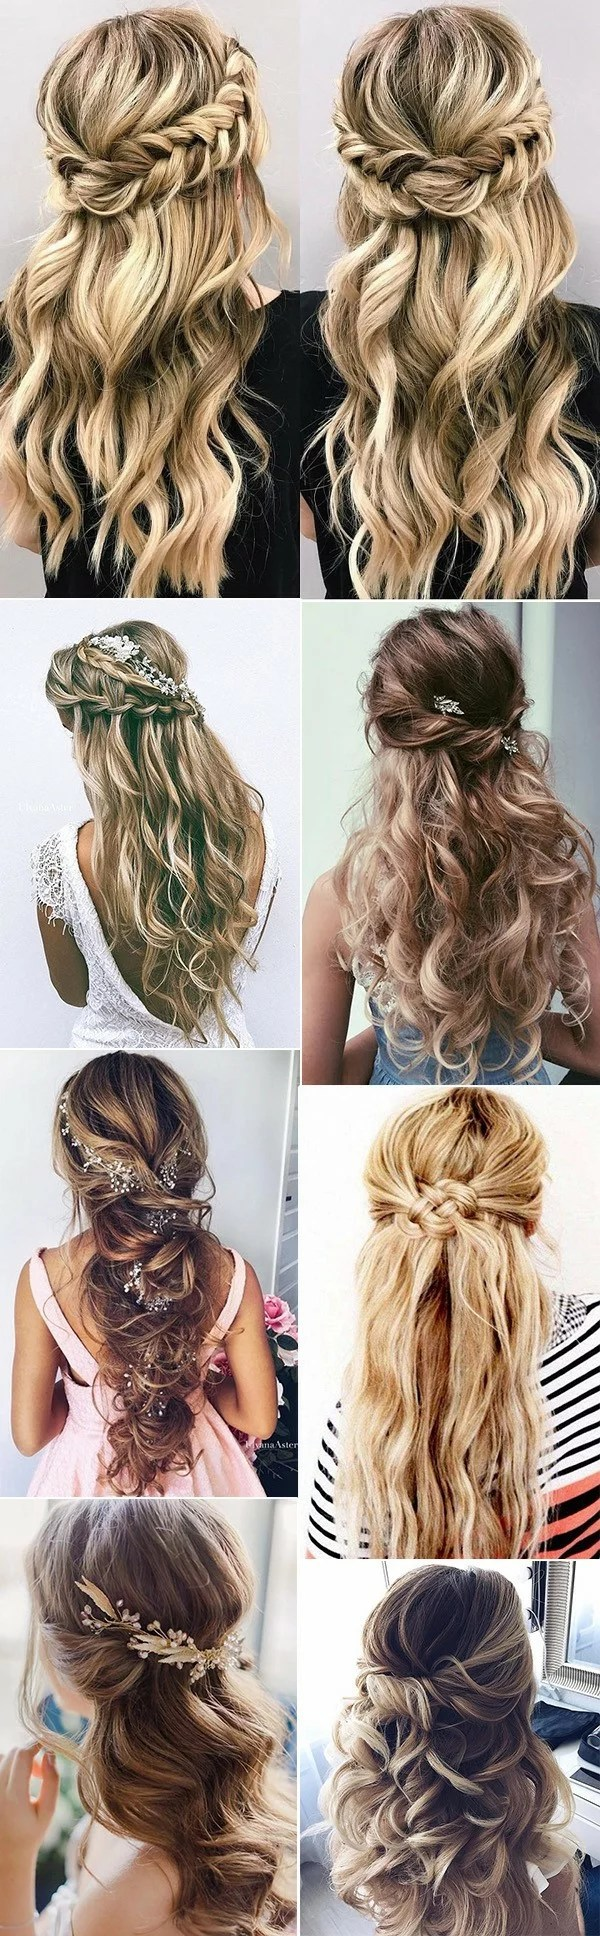 Wedding Hairstyles Long Hair Half Up Half Down The Royal Weddings